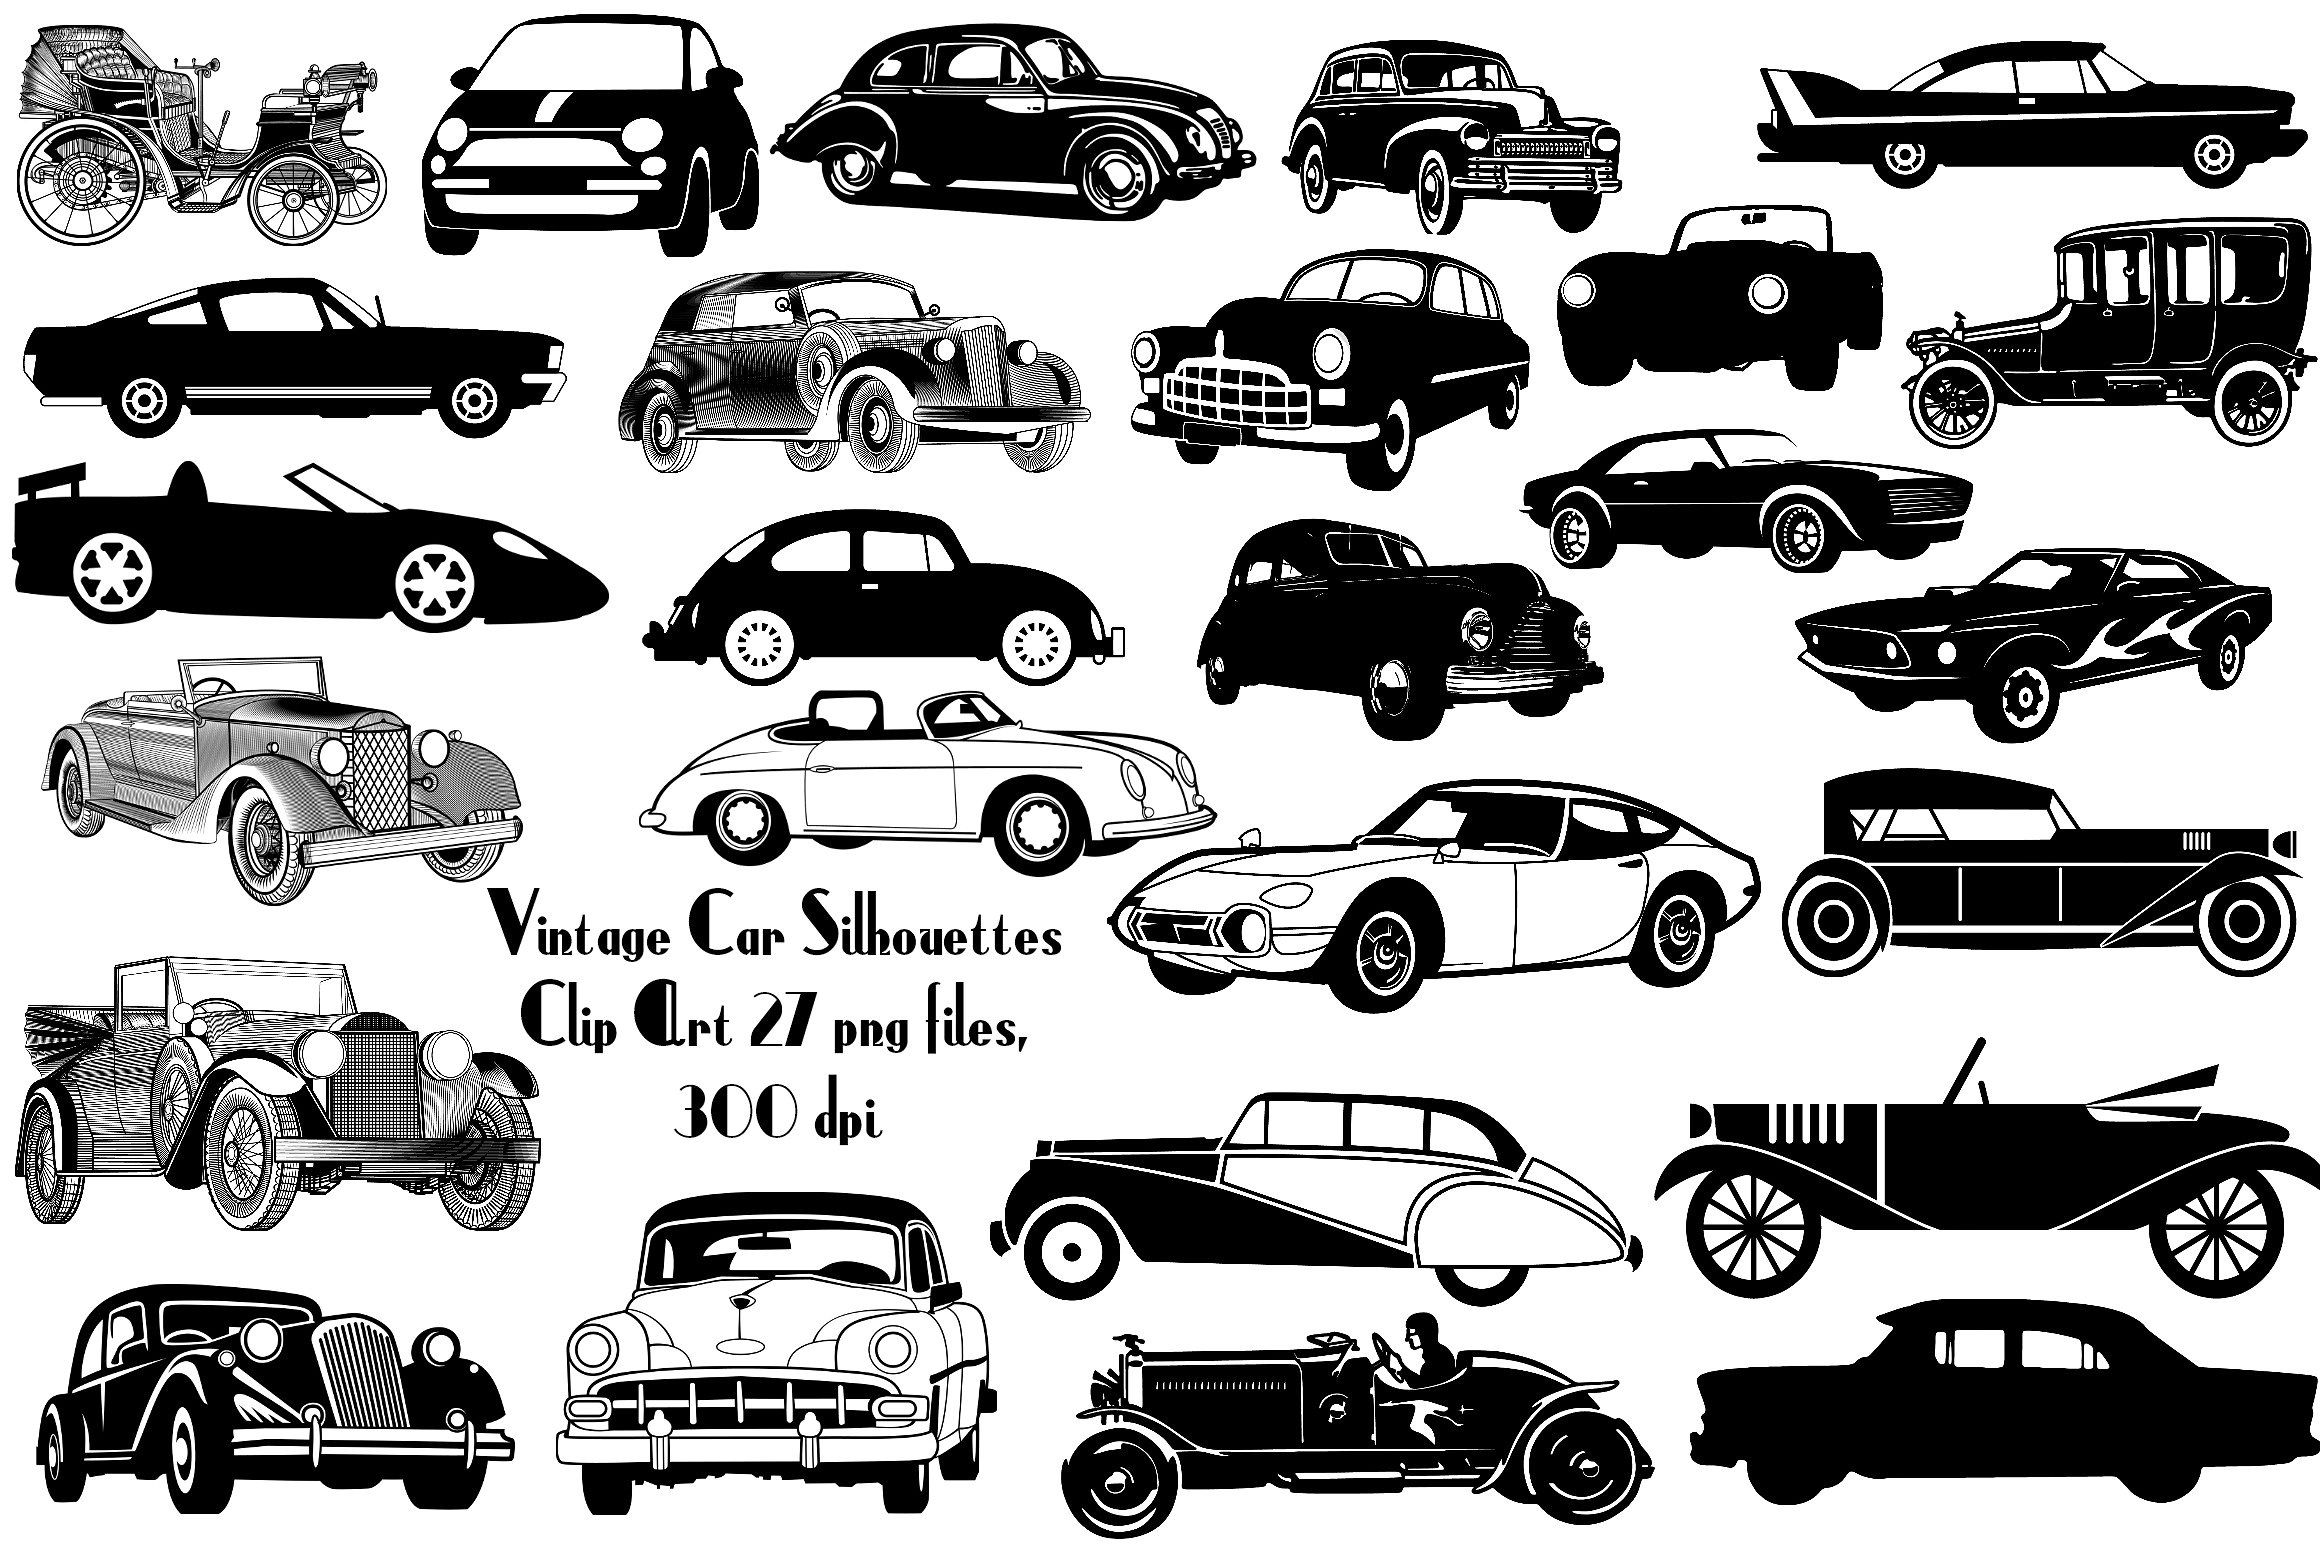 Vintage Car Silhouettes AI EPS PNG #widest#inches#graphics ...